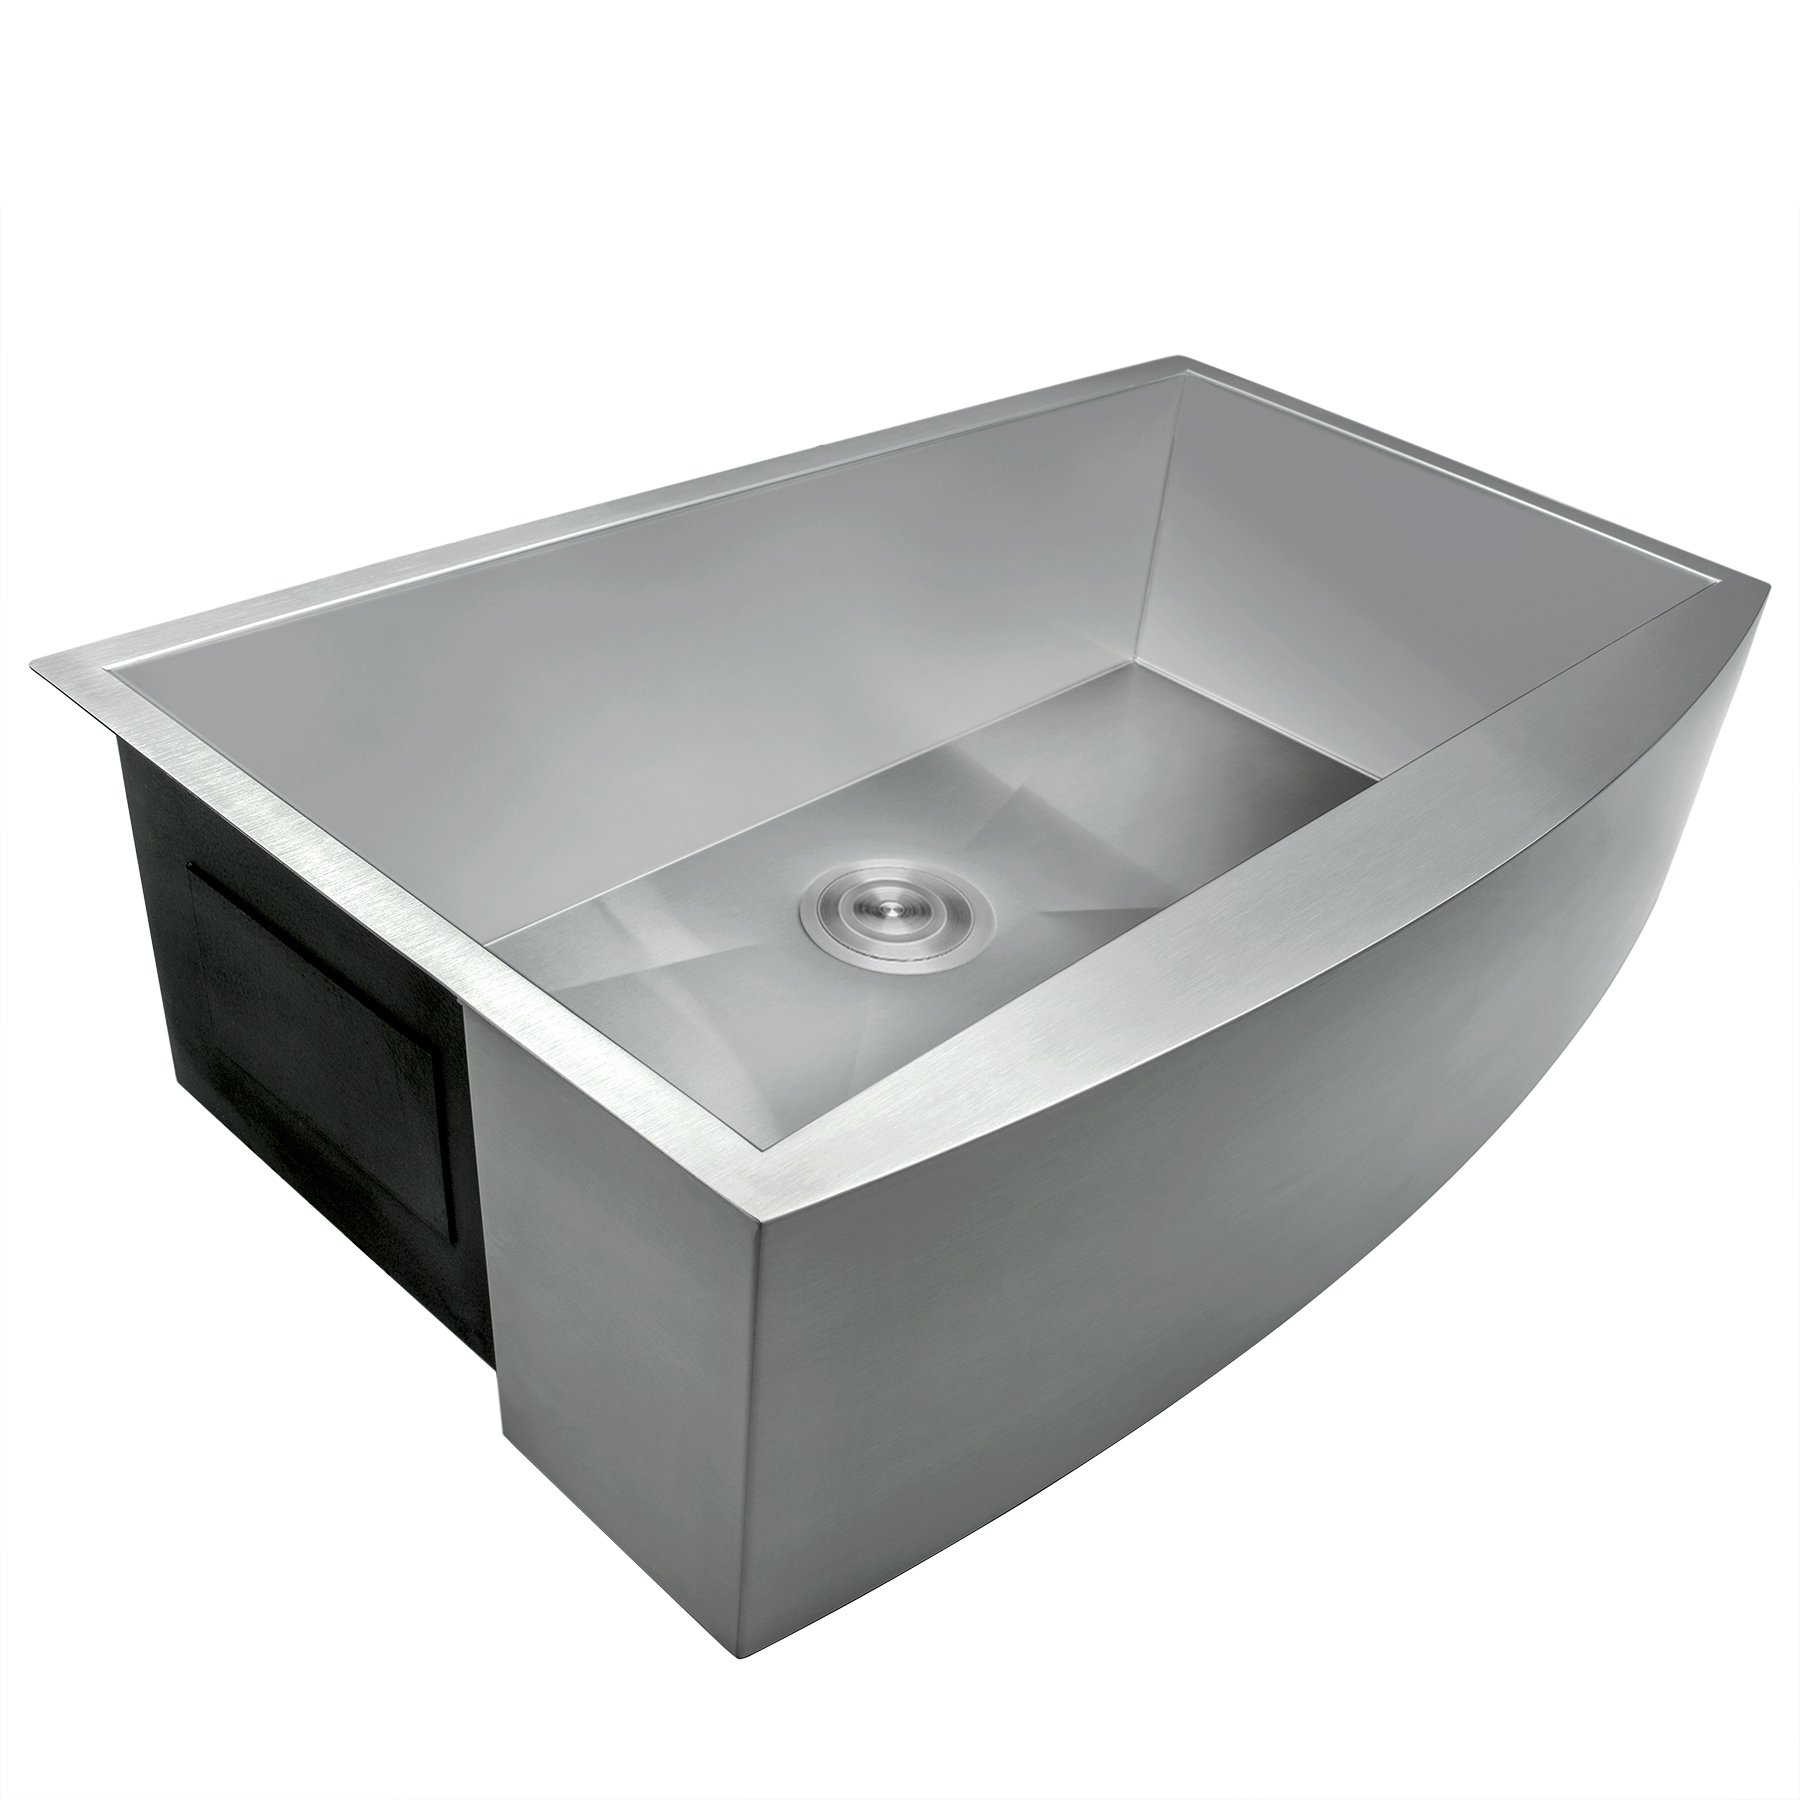 Perfetto Kitchen and Bath 33'' x 22'' x 9'' Apron Undermount Handmade 18 Gauge Stainless Steel Single Basin Kitchen Sink w/ Dish Grid & Drain Combo by Perfetto Kitchen and Bath (Image #5)